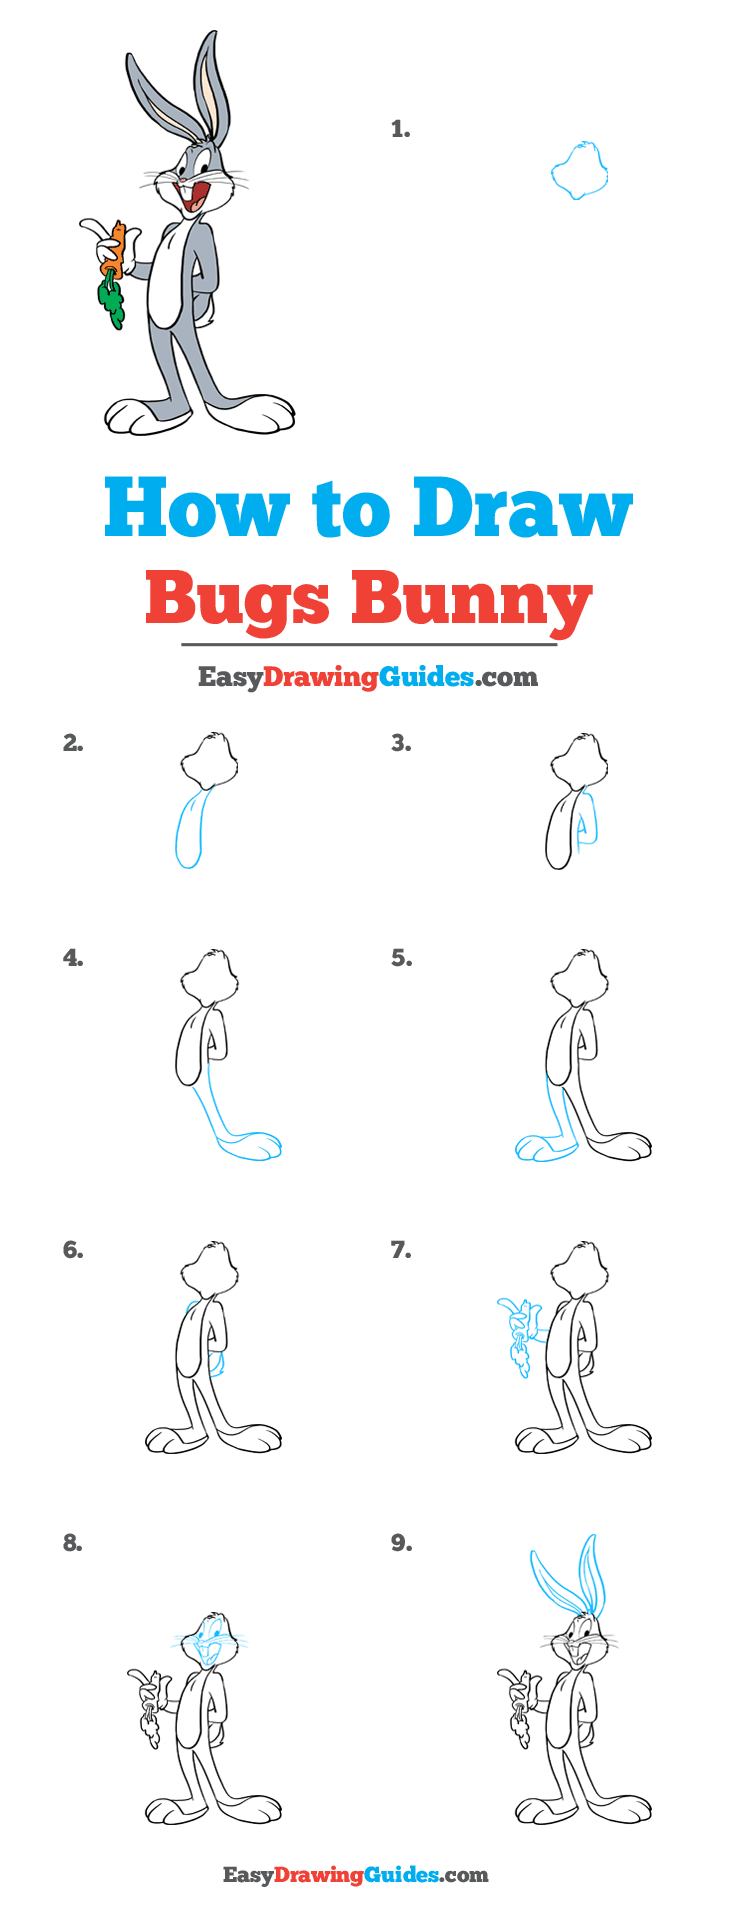 How to Draw Bugs Bunny